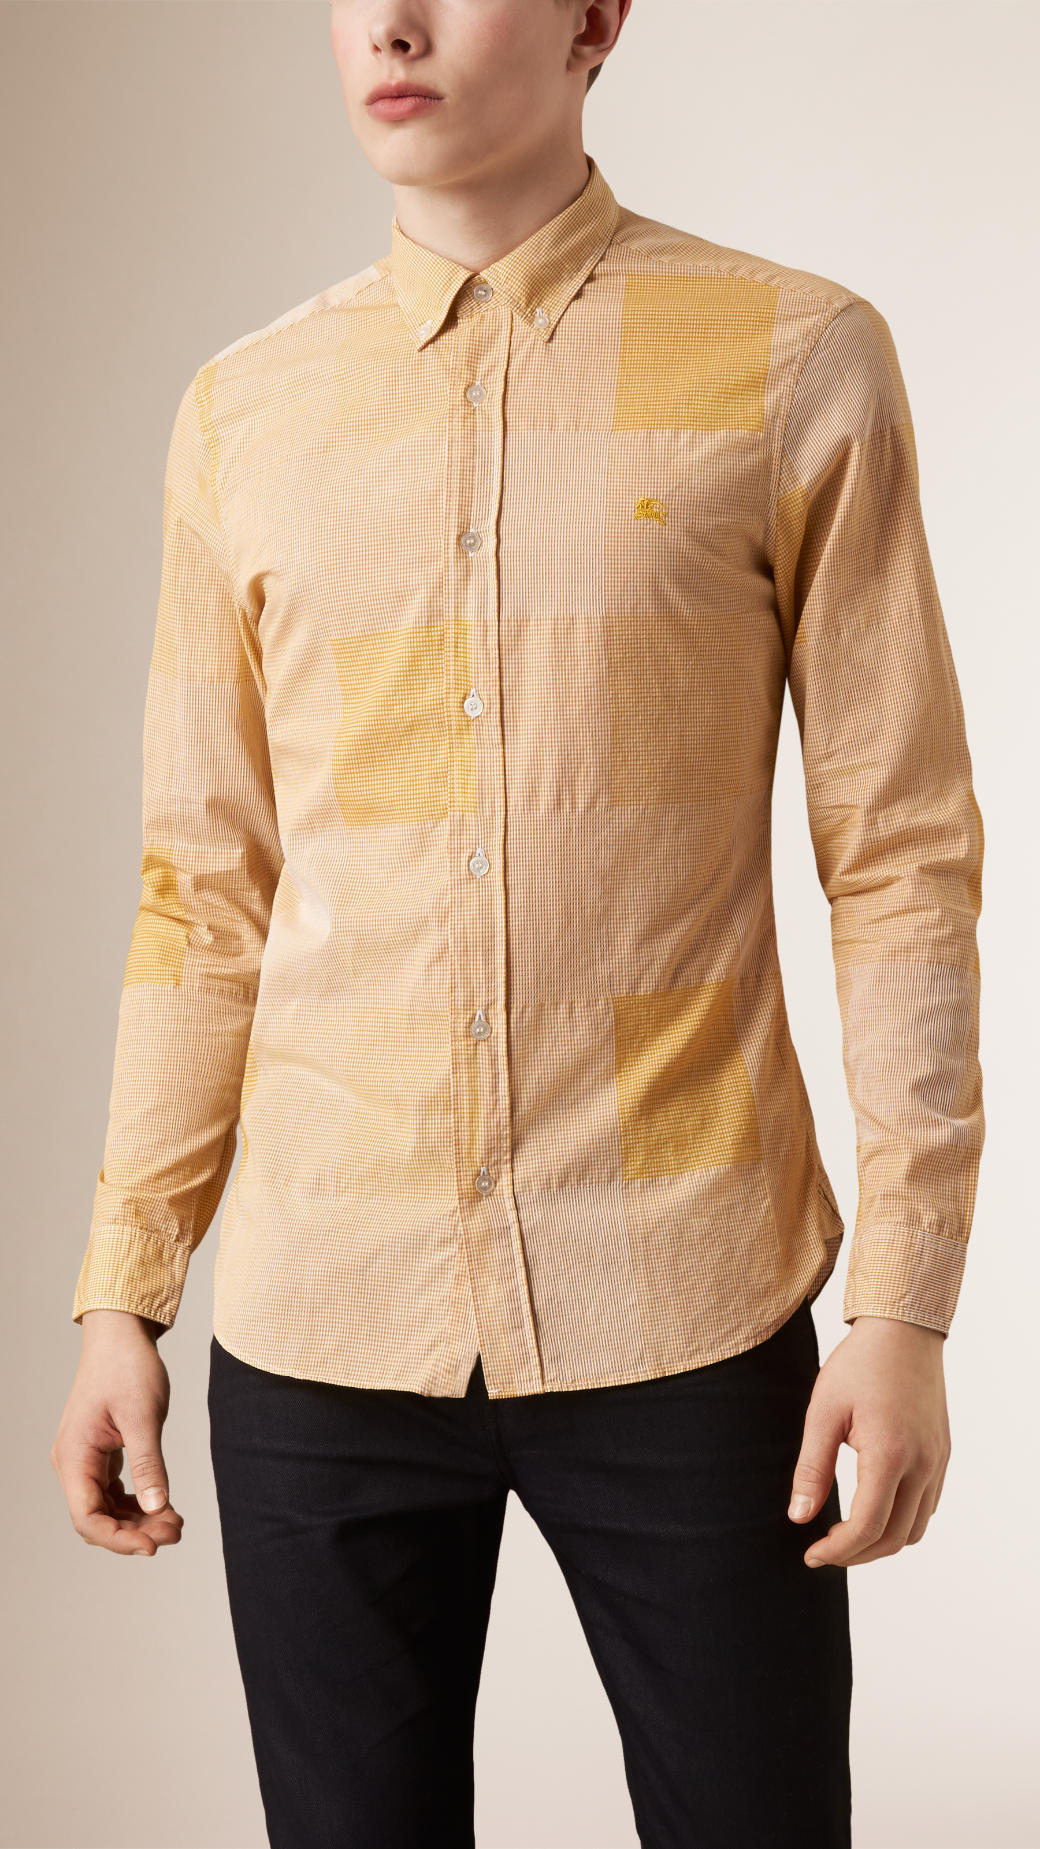 Burberry slim fit cotton gingham jacquard shirt in yellow for Mens yellow gingham shirt